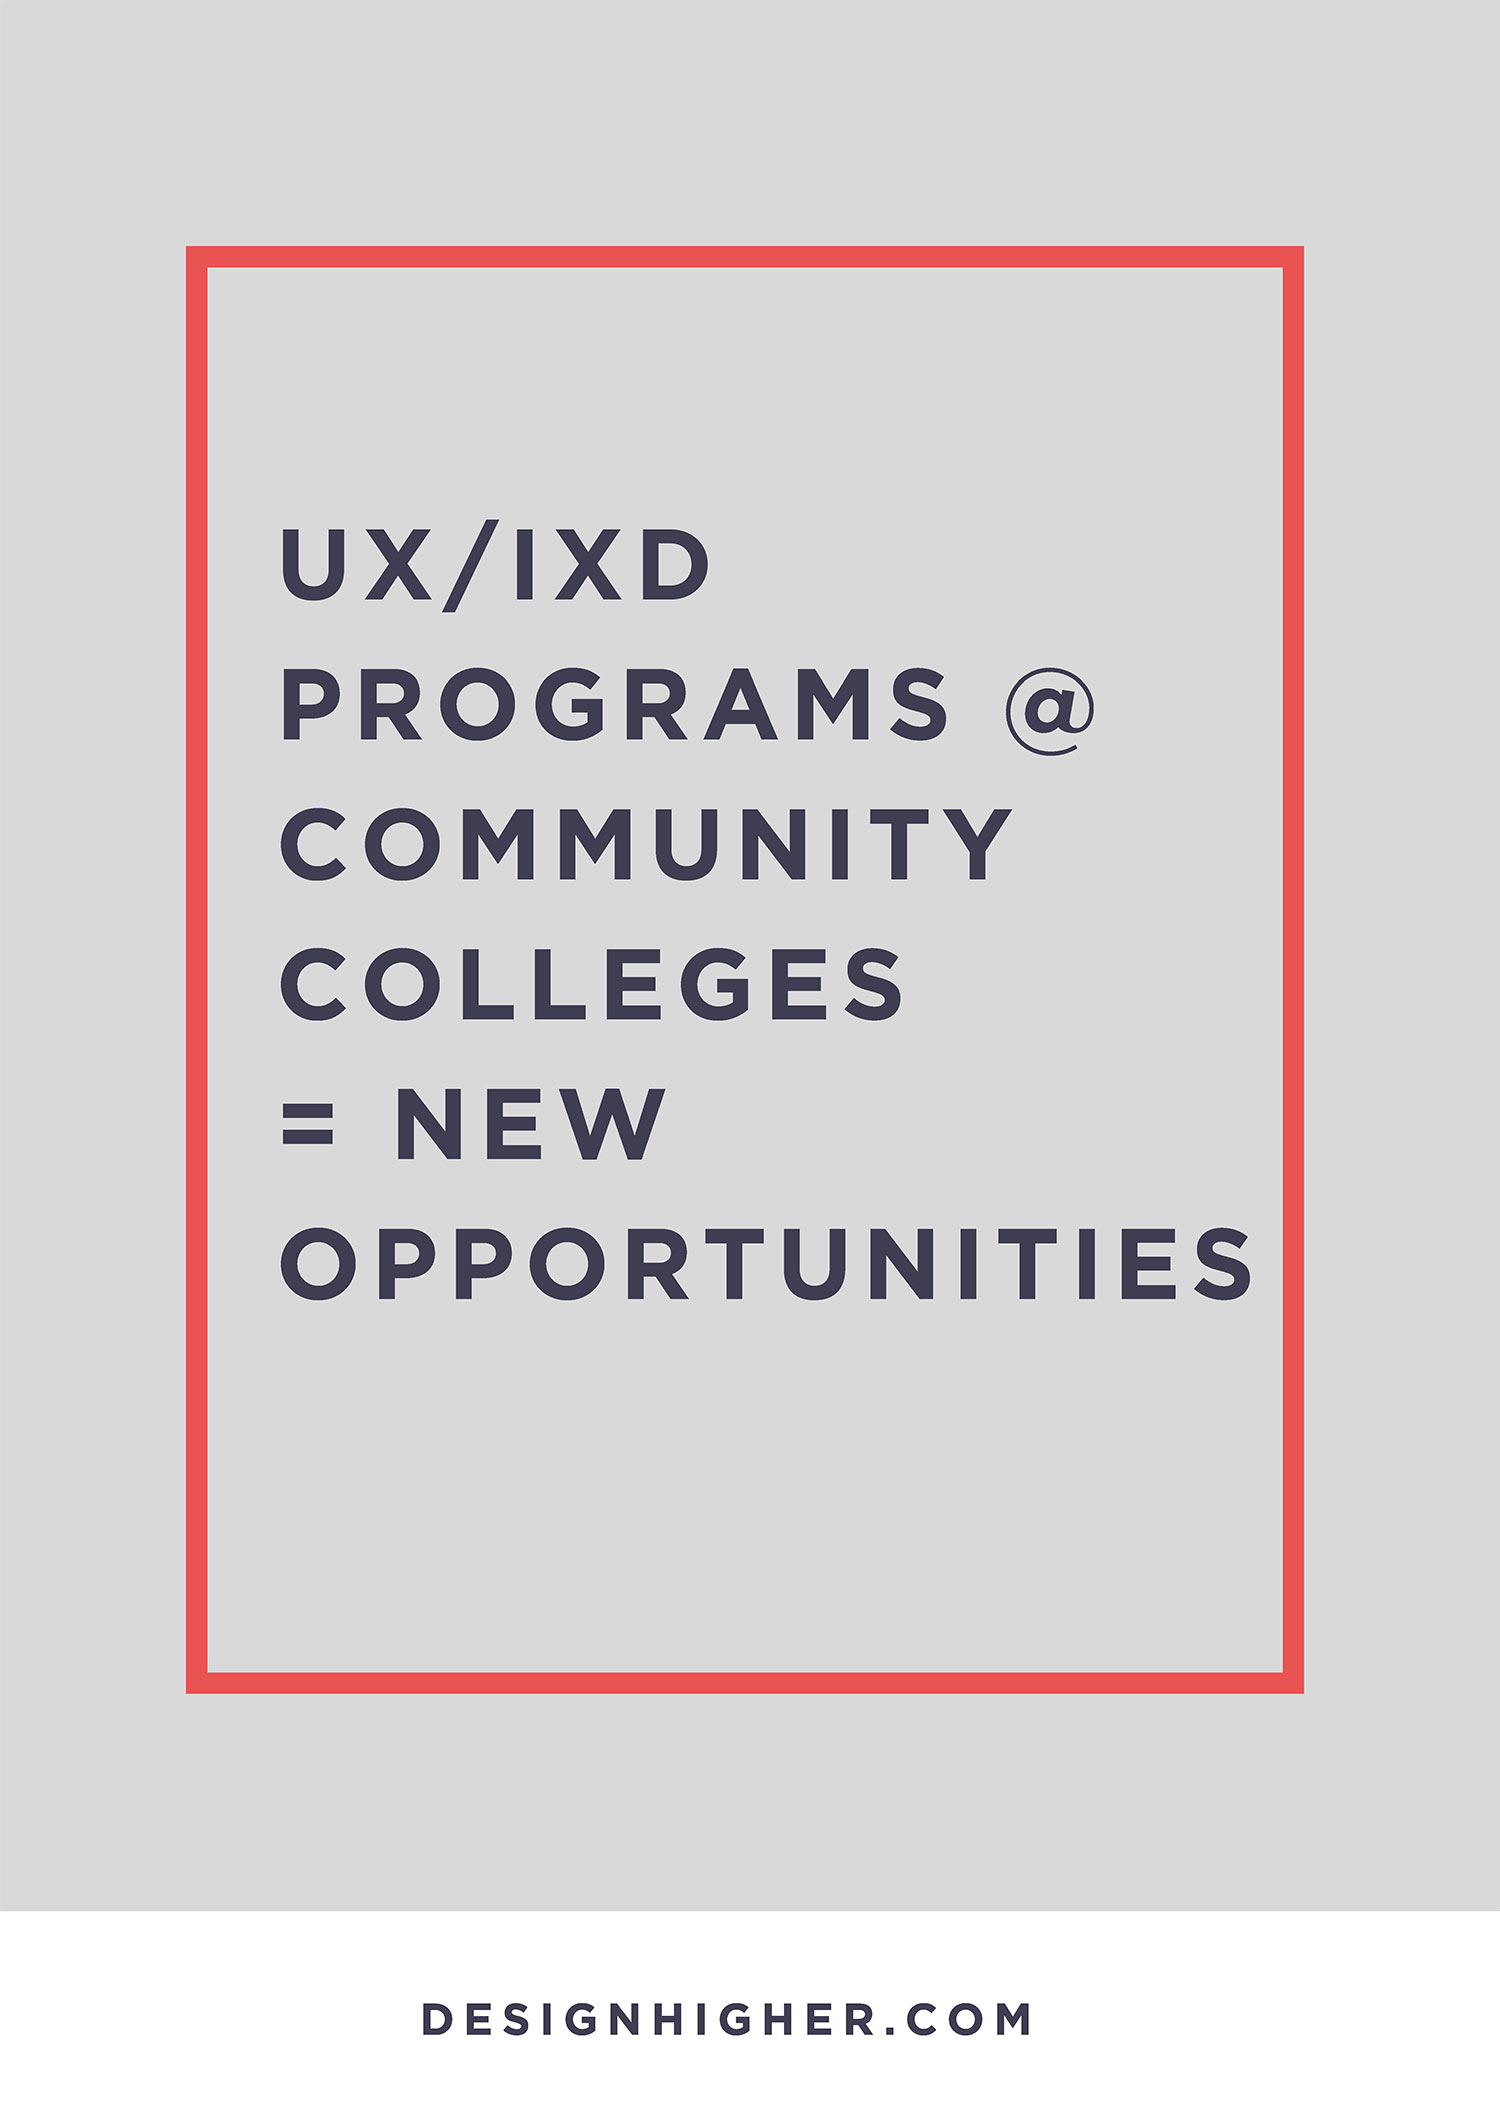 IxD Programs at Community Colleges // designhigher.com